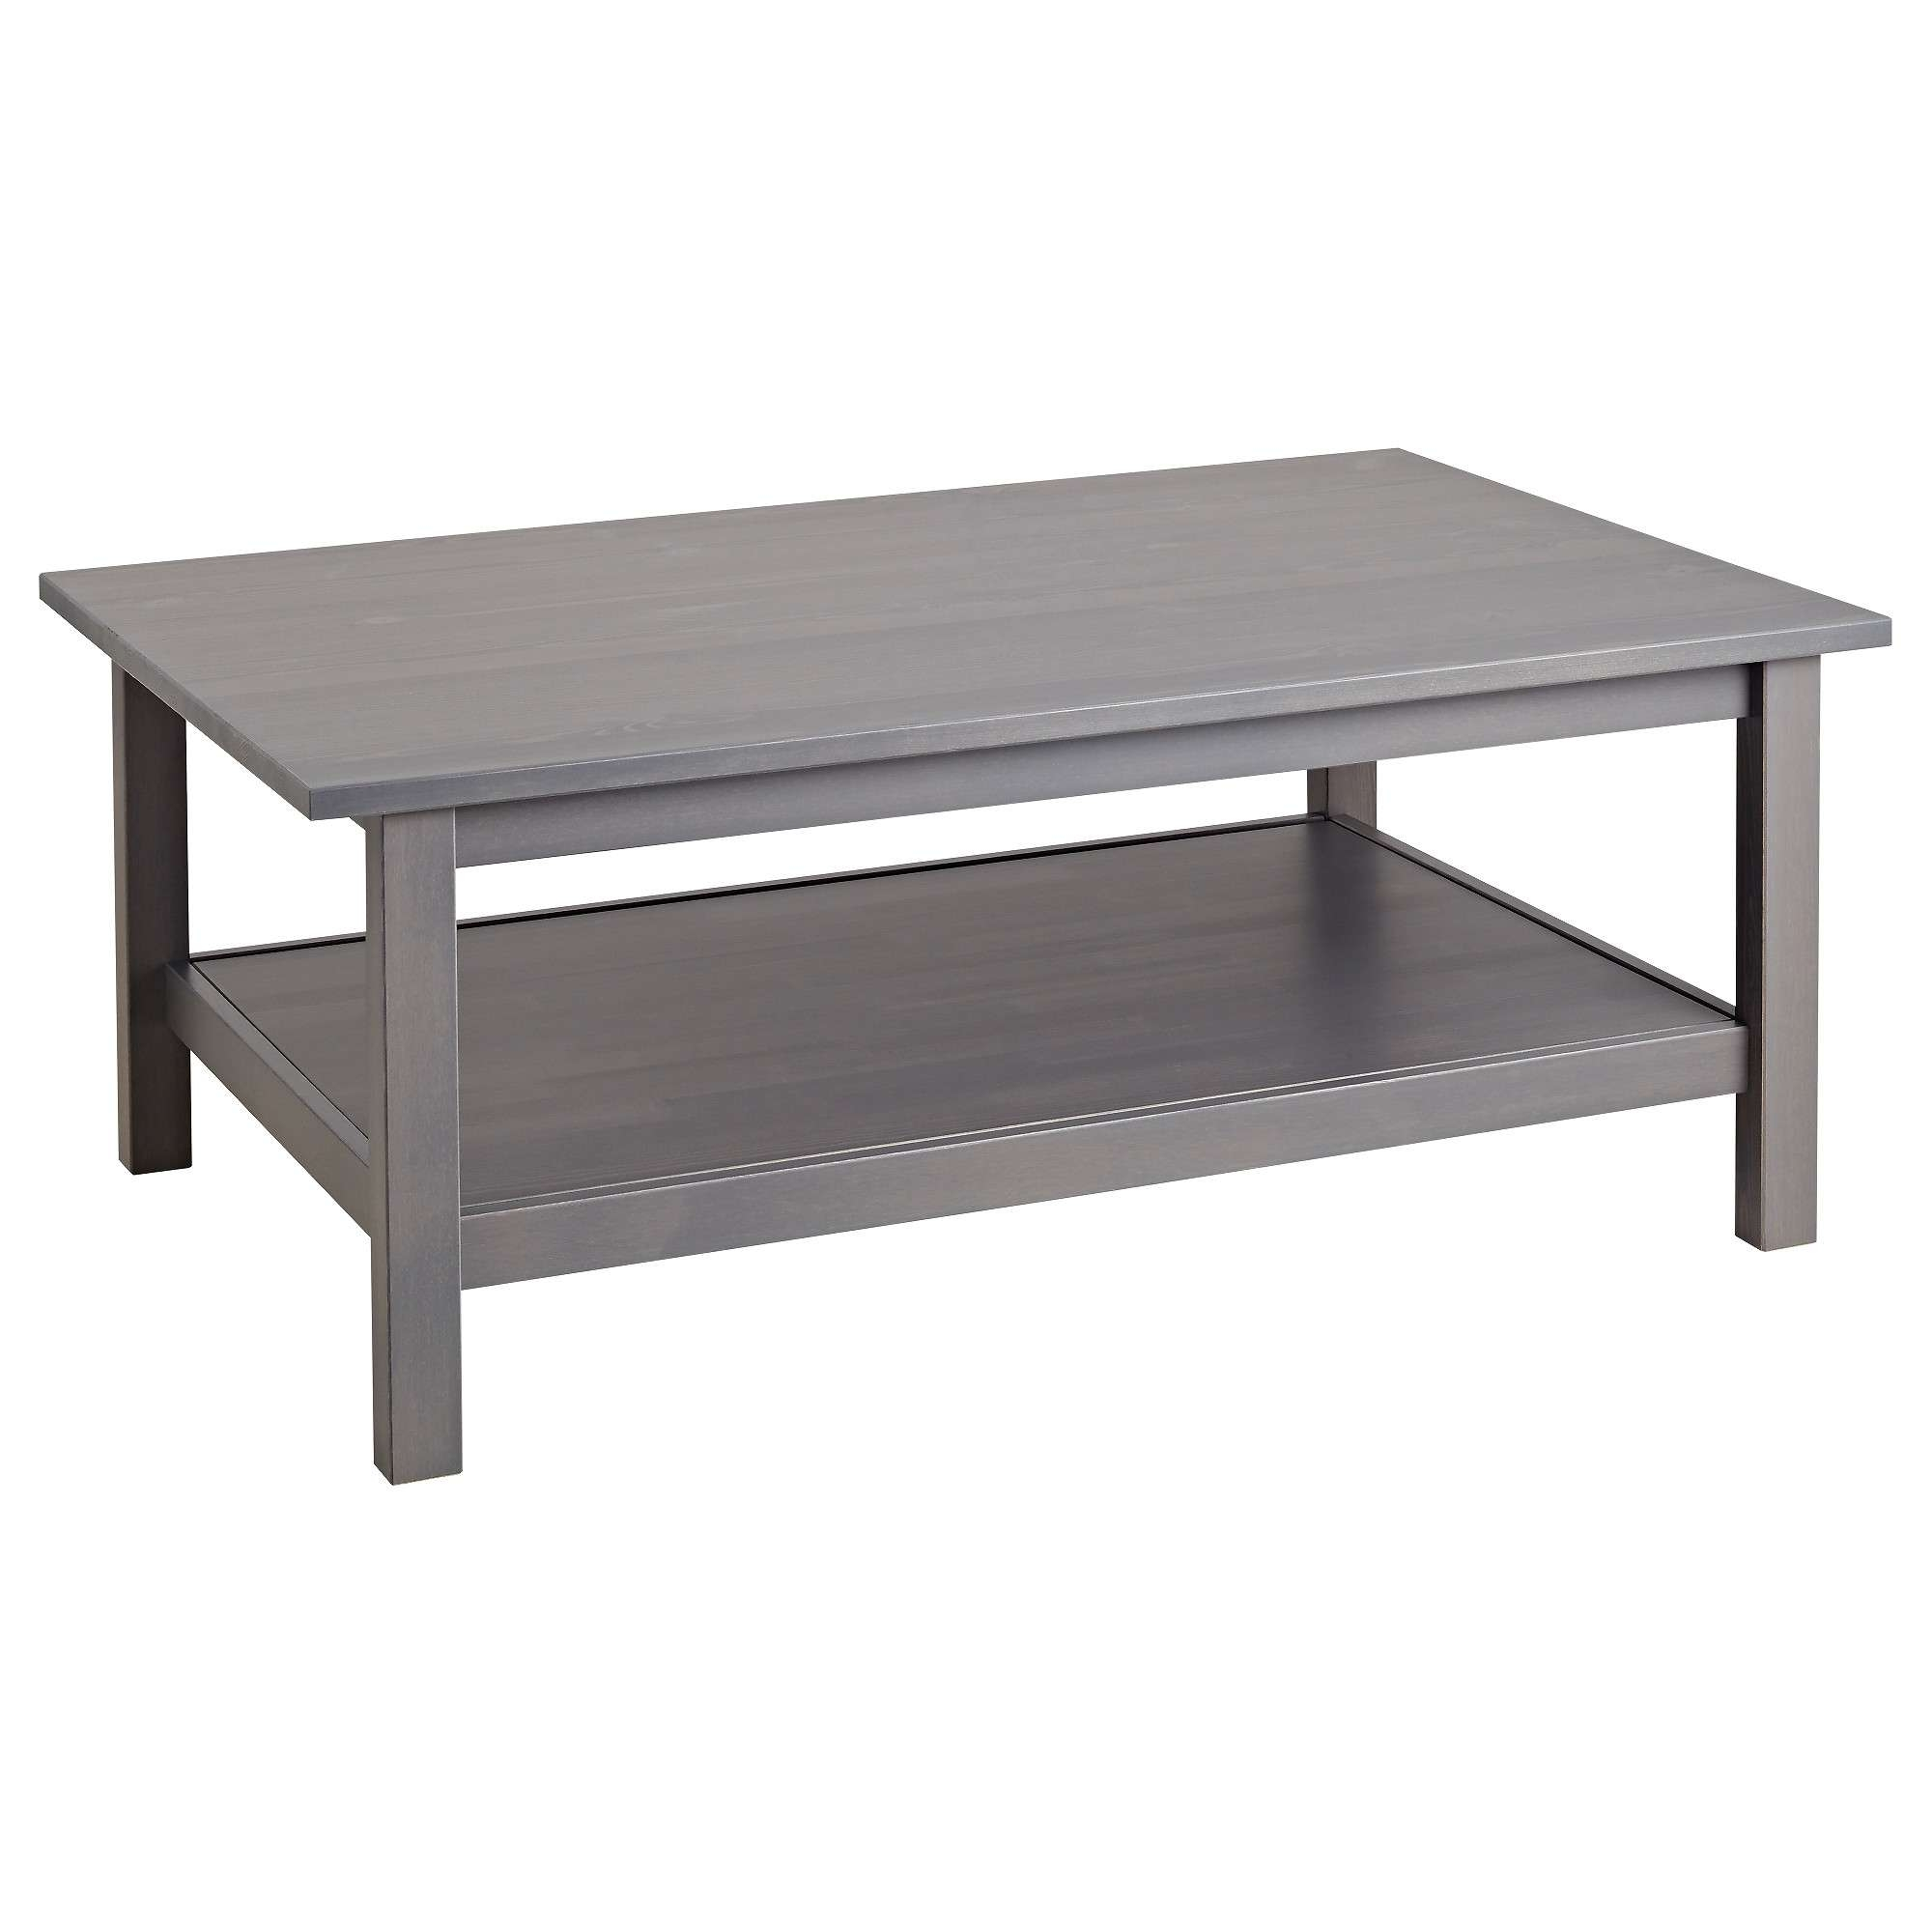 Hemnes Coffee Table – Dark Gray Stained – Ikea With Regard To Well Known White And Black Coffee Tables (View 8 of 20)